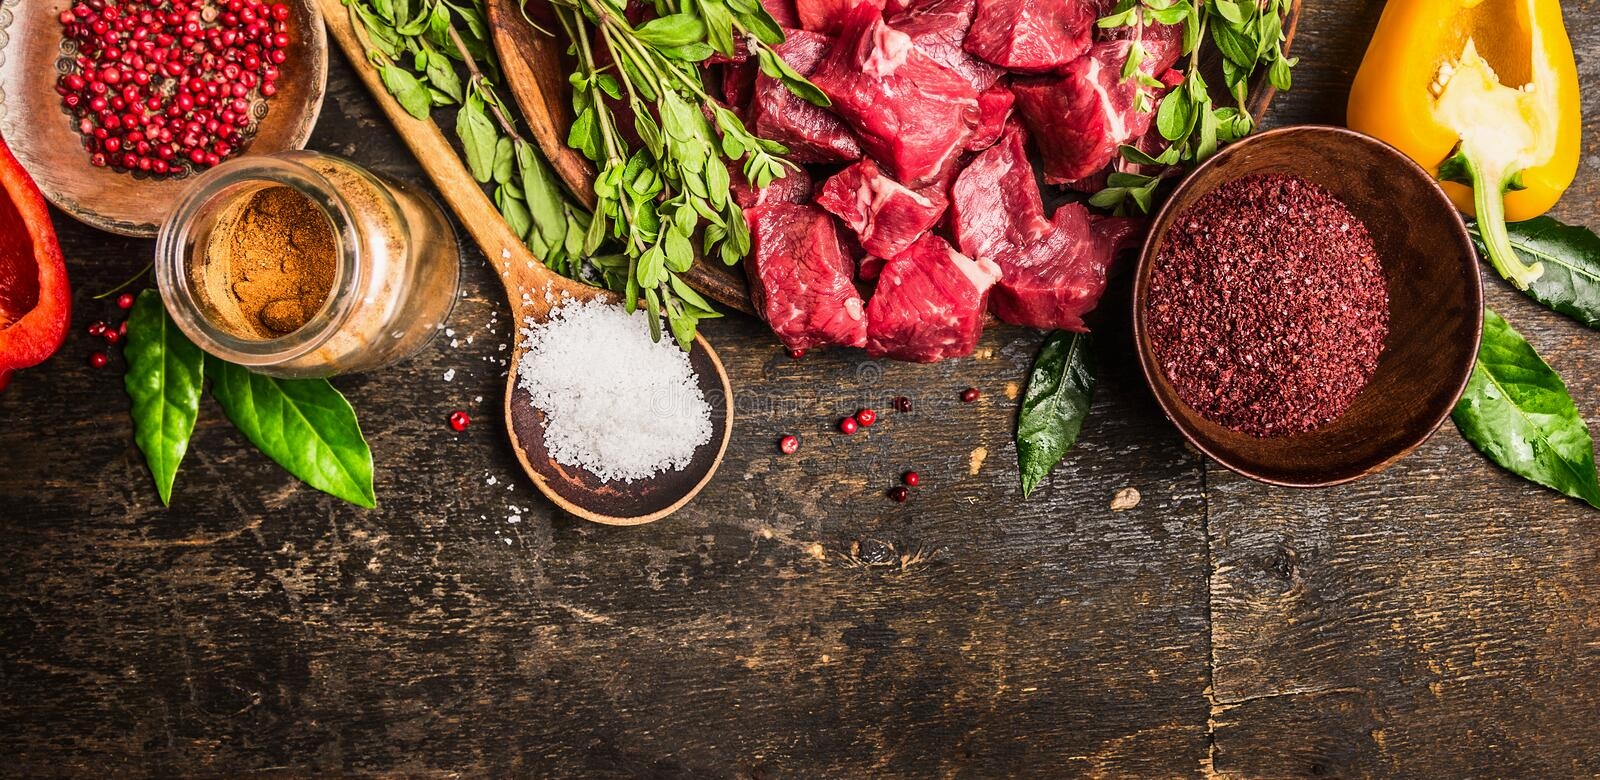 Download Ingredients For Goulash Or Stew Cooking: Raw Meat, Herbs,spices,vegetables And Spoon Of Salt On Rustic Wooden Background, Top View Stock Image - Image of closeup, food: 55977497